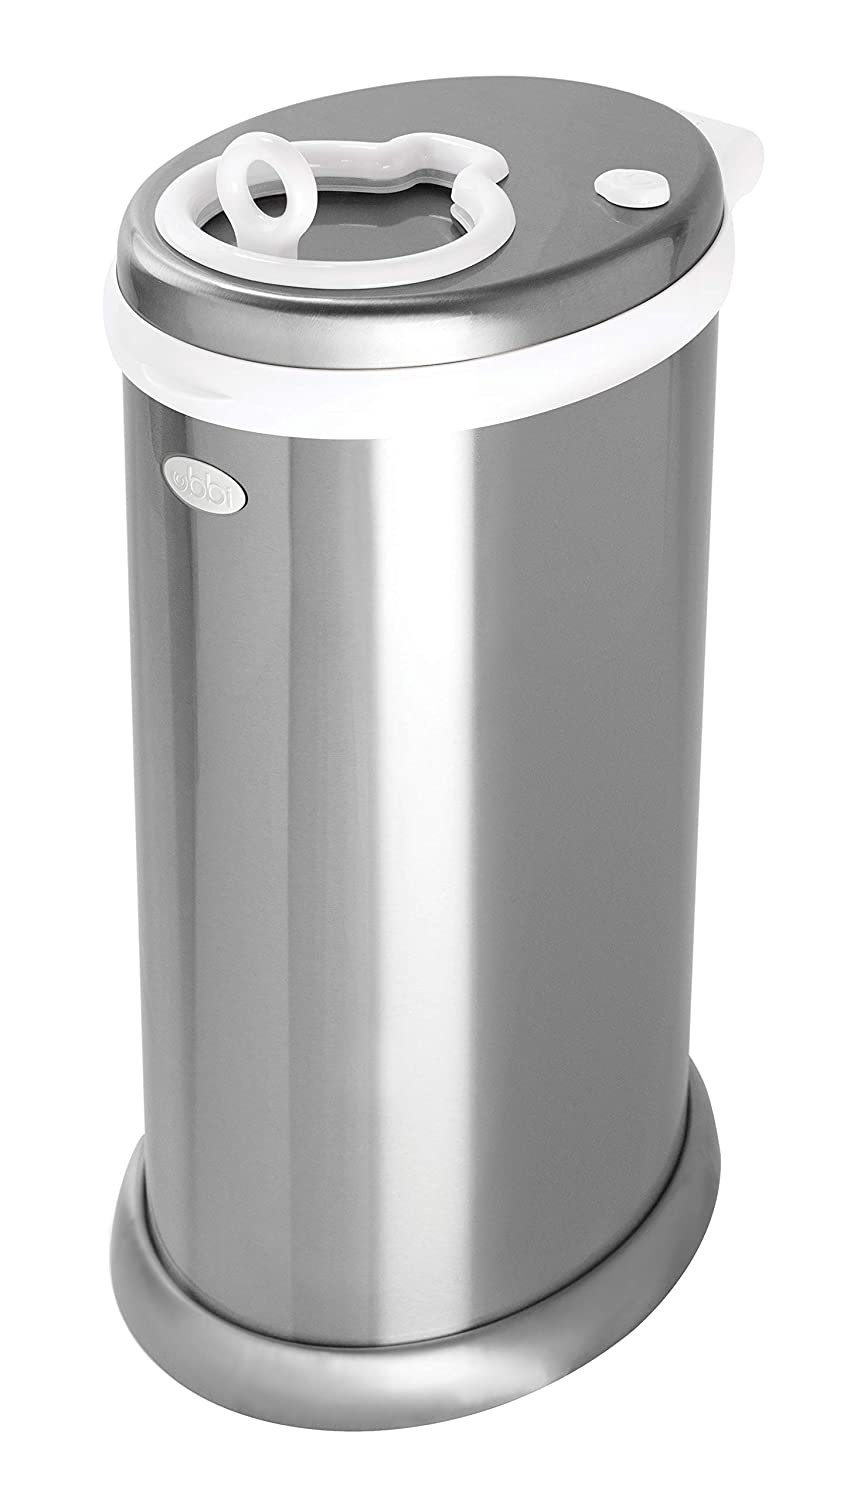 Ubbi Steel Odor Locking, No Special Bag Required, Money Saving, Modern Design, Registry Must-Have Diaper Pail, Chrome